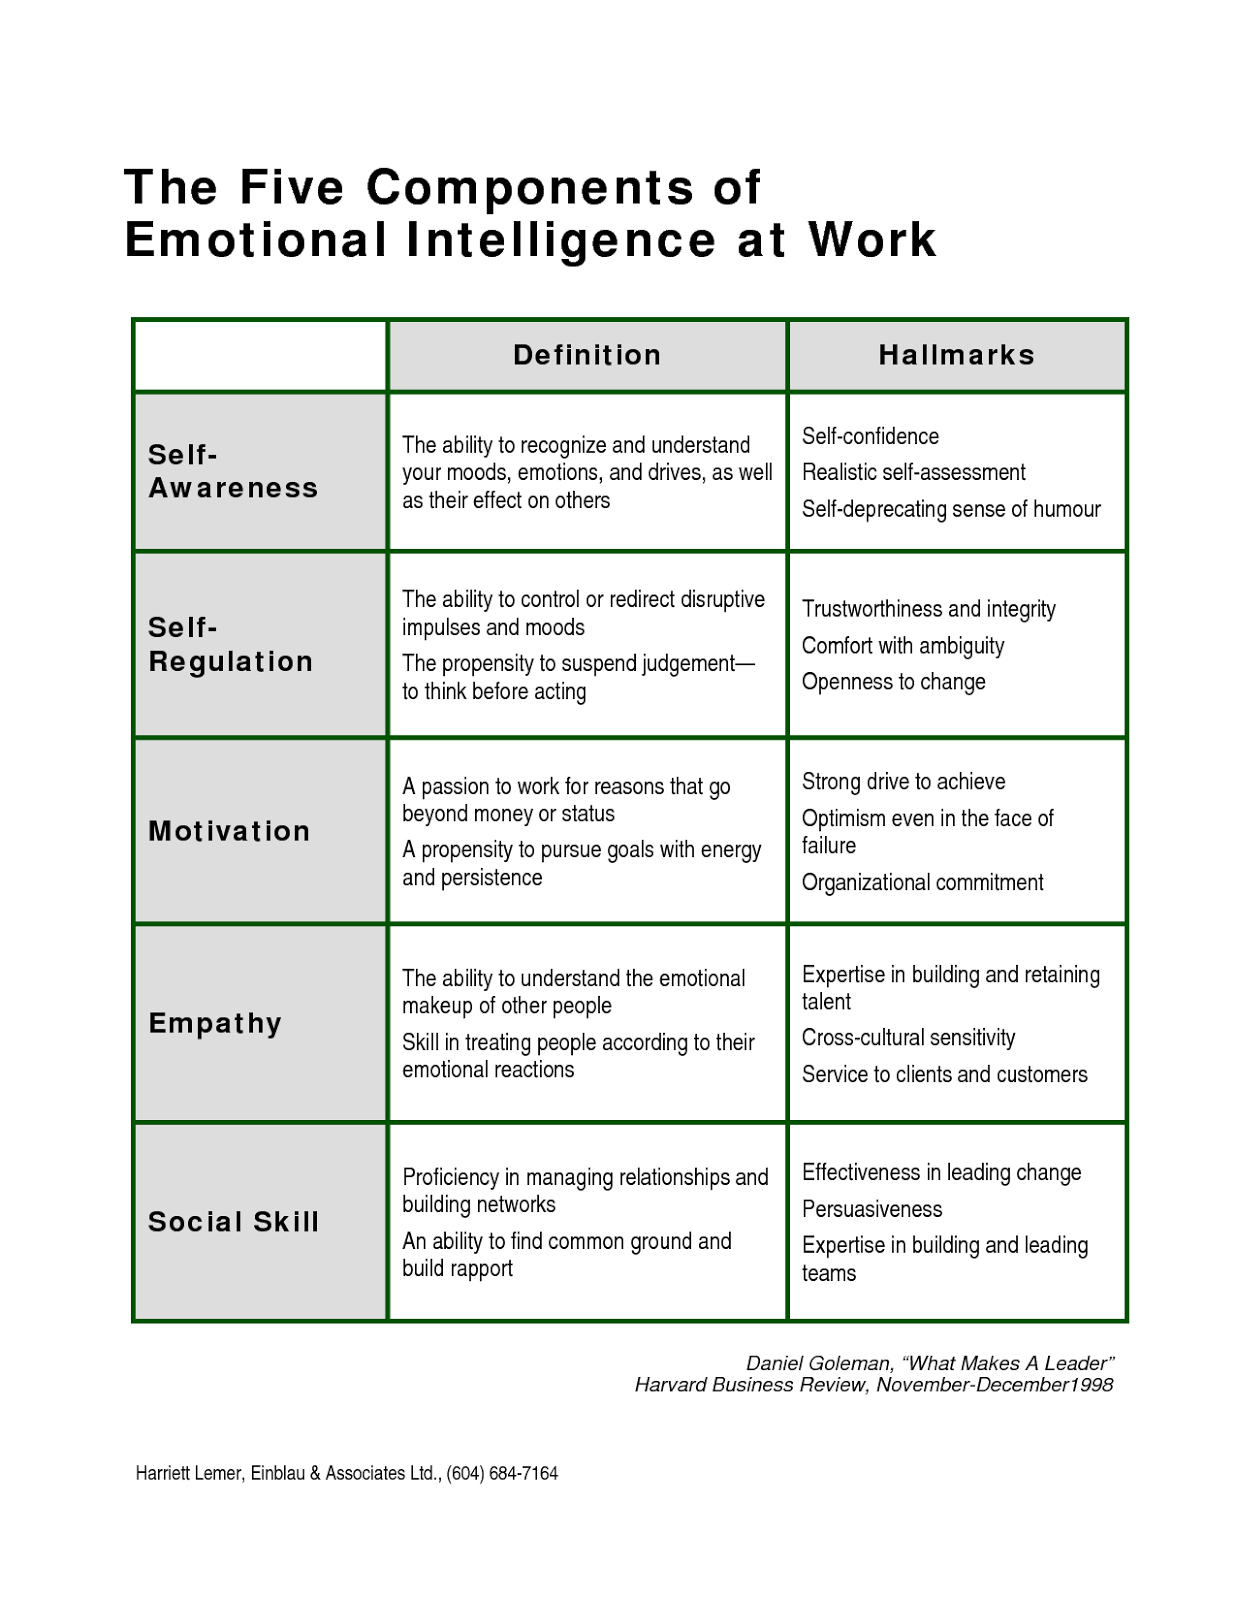 Iammoulude Emotional Intelligence Components And